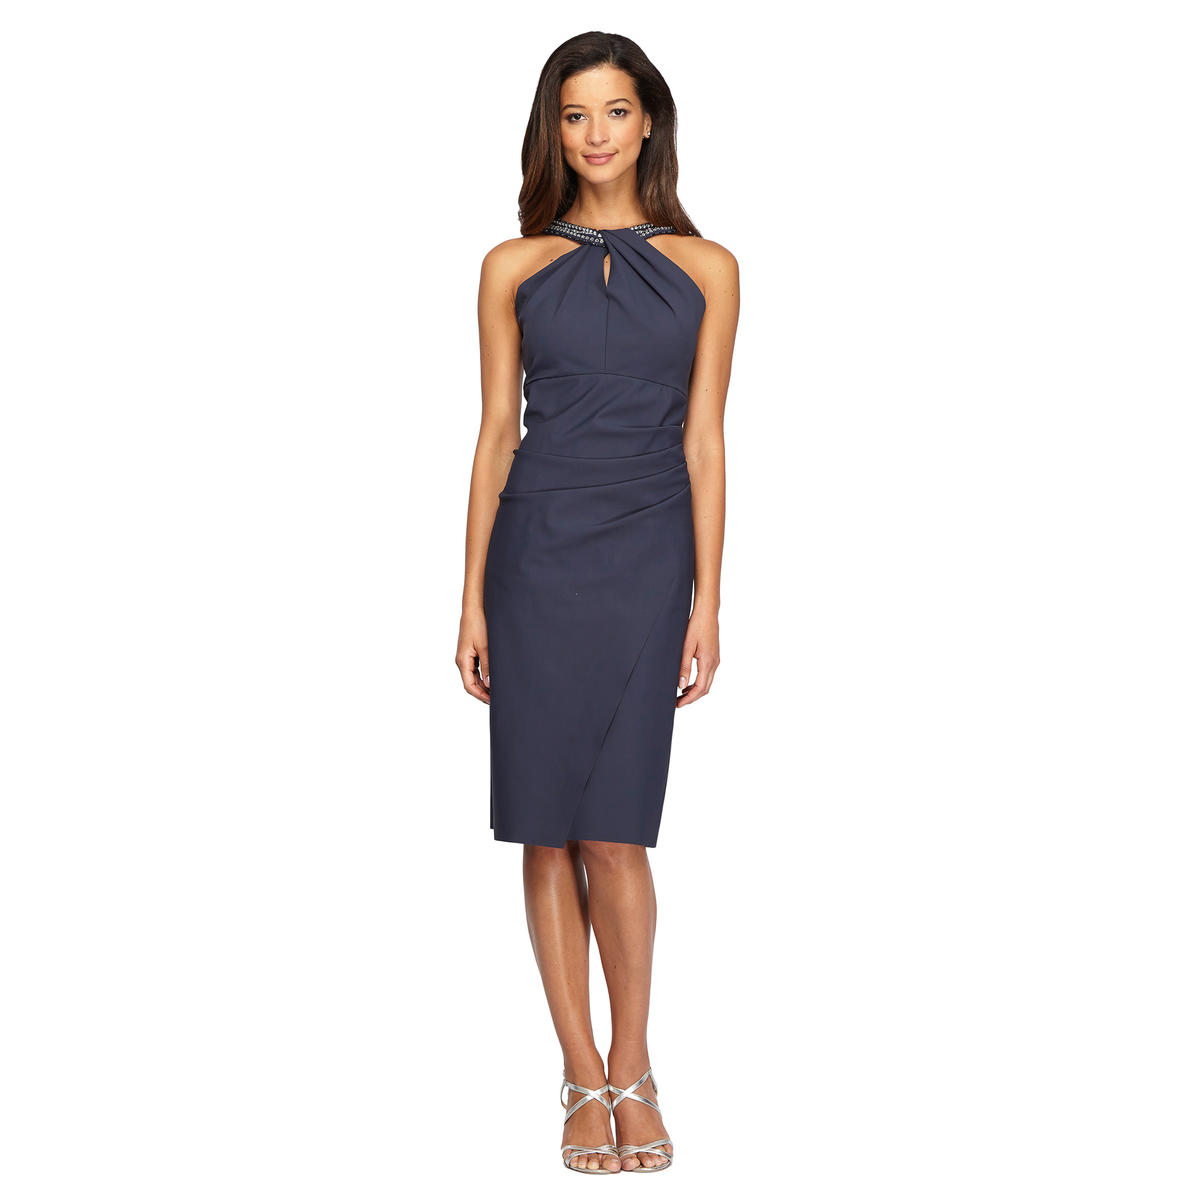 10b3546edb ALEX APPAREL GROUP INC - Beaded Halter Neck Cocktail Dress